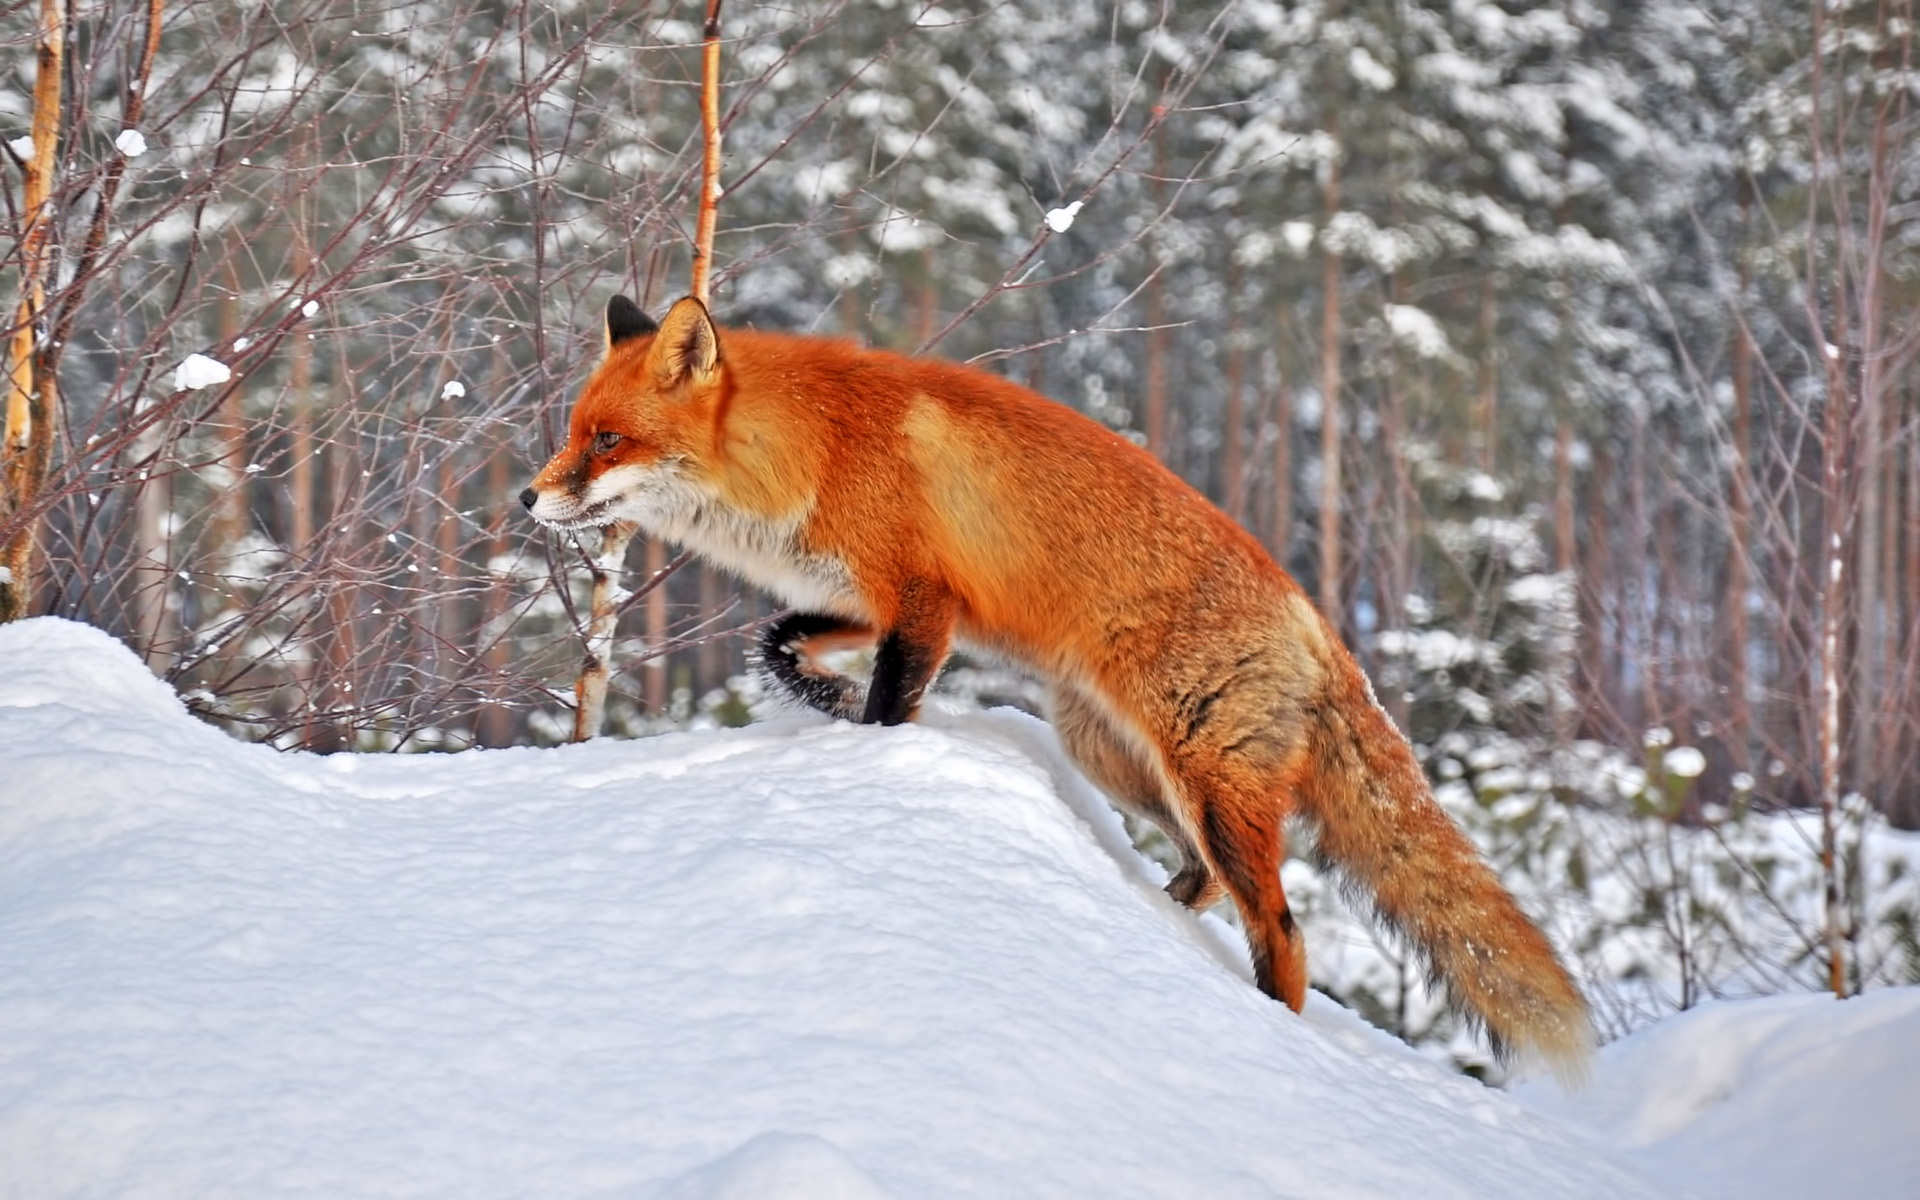 34888 download wallpaper Animals, Fox screensavers and pictures for free